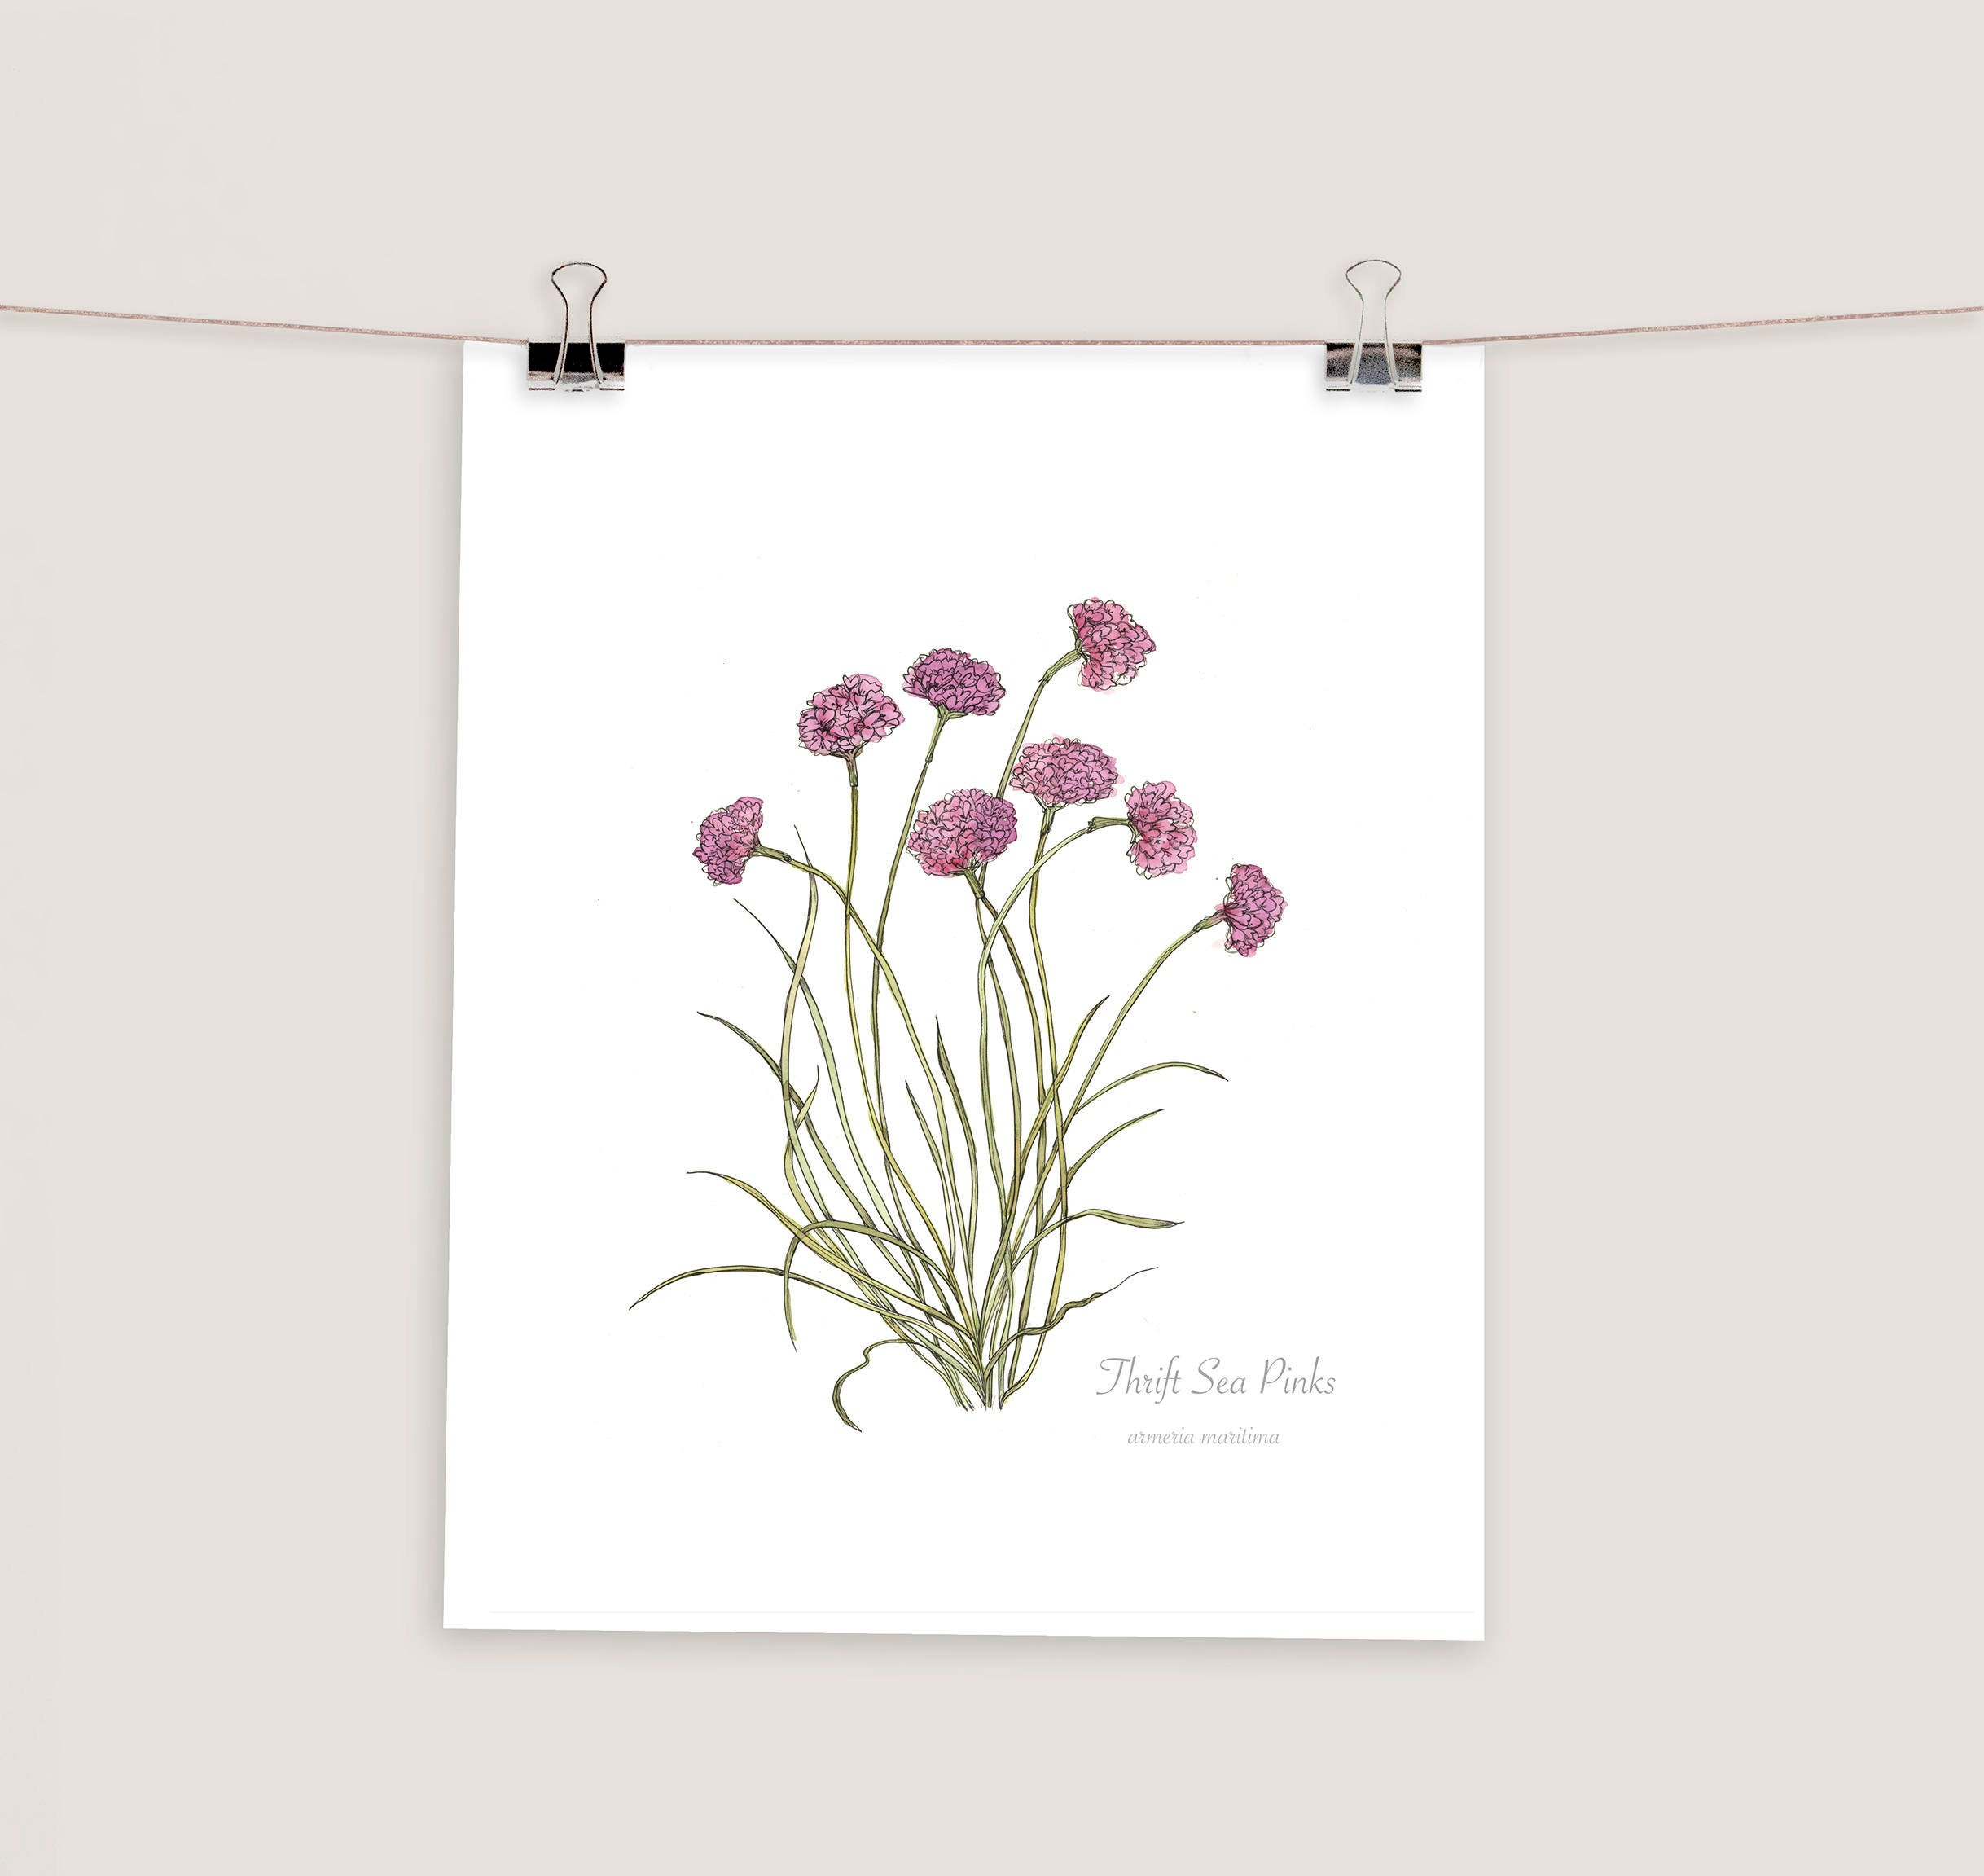 Thrift Sea Pinks Wild Flower Botanical Print Watercolour Etsy